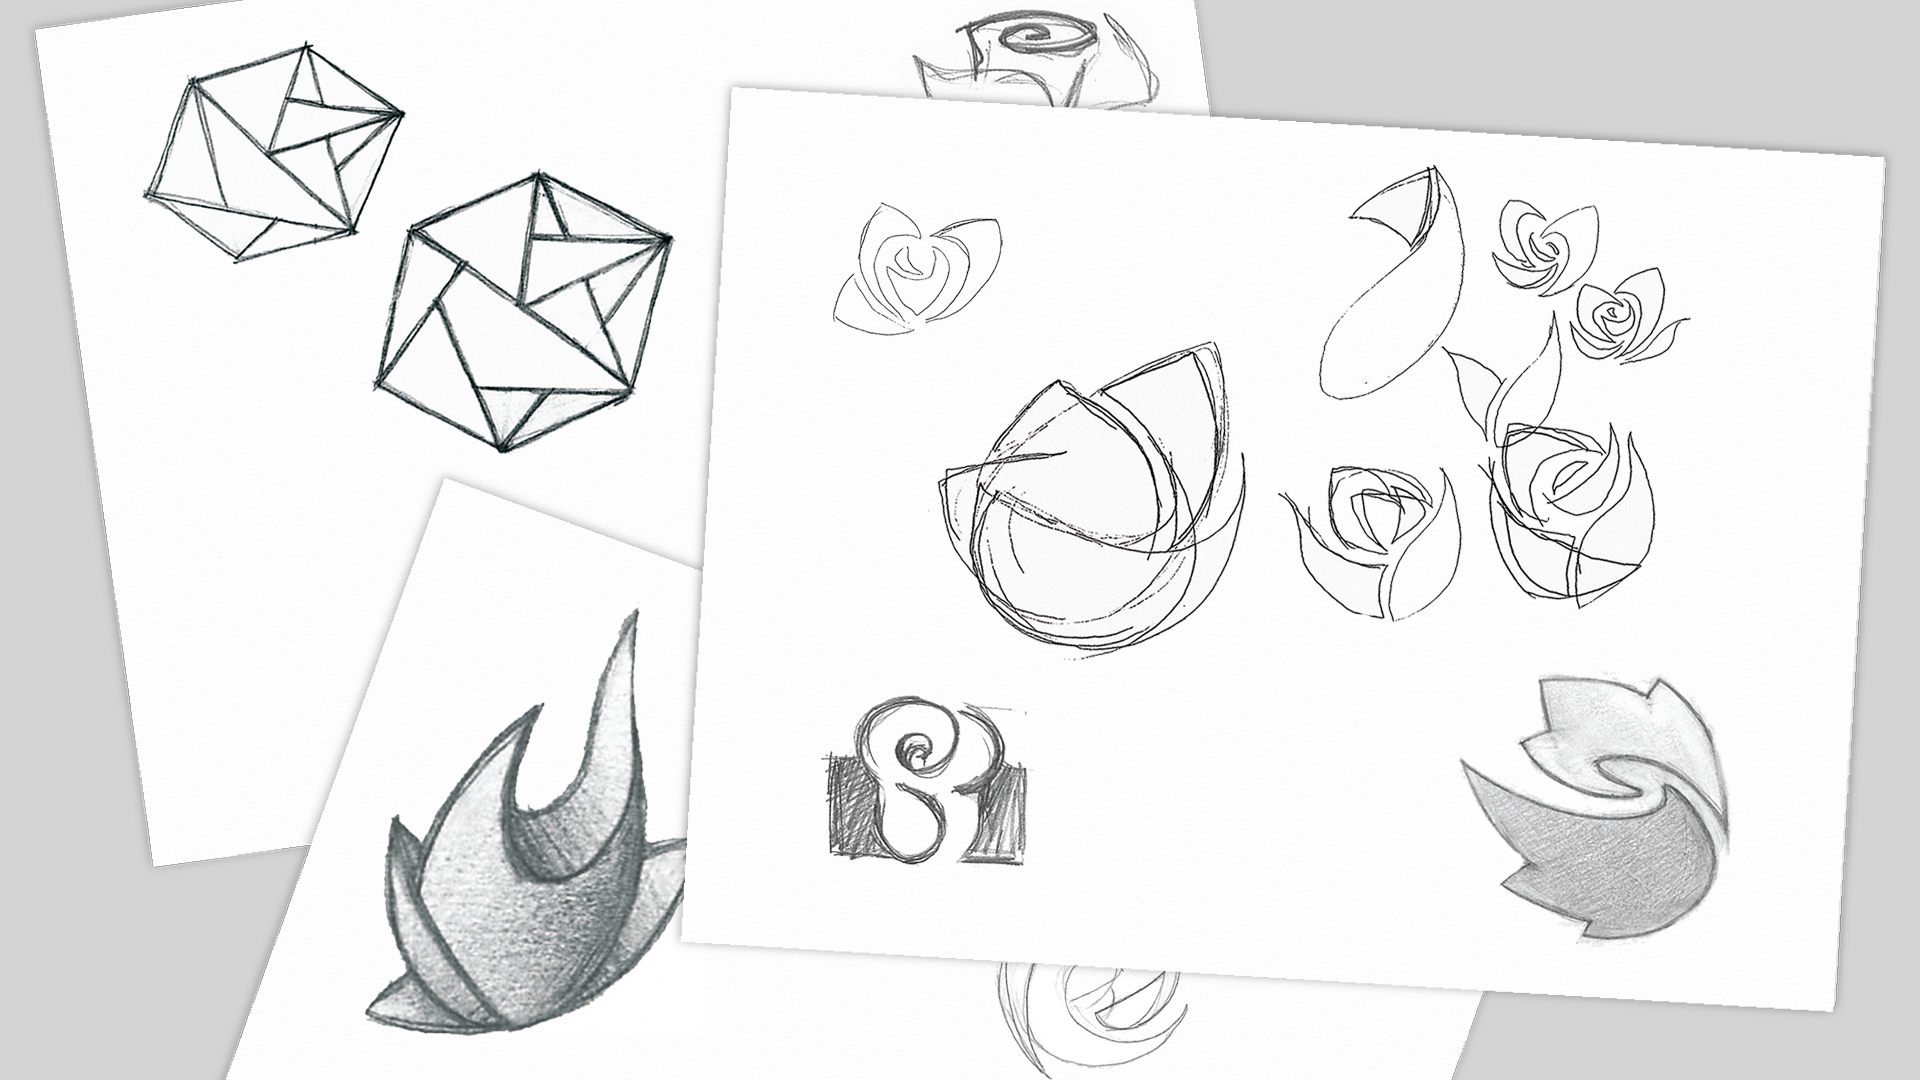 ROS-LogoSketches-v2.png